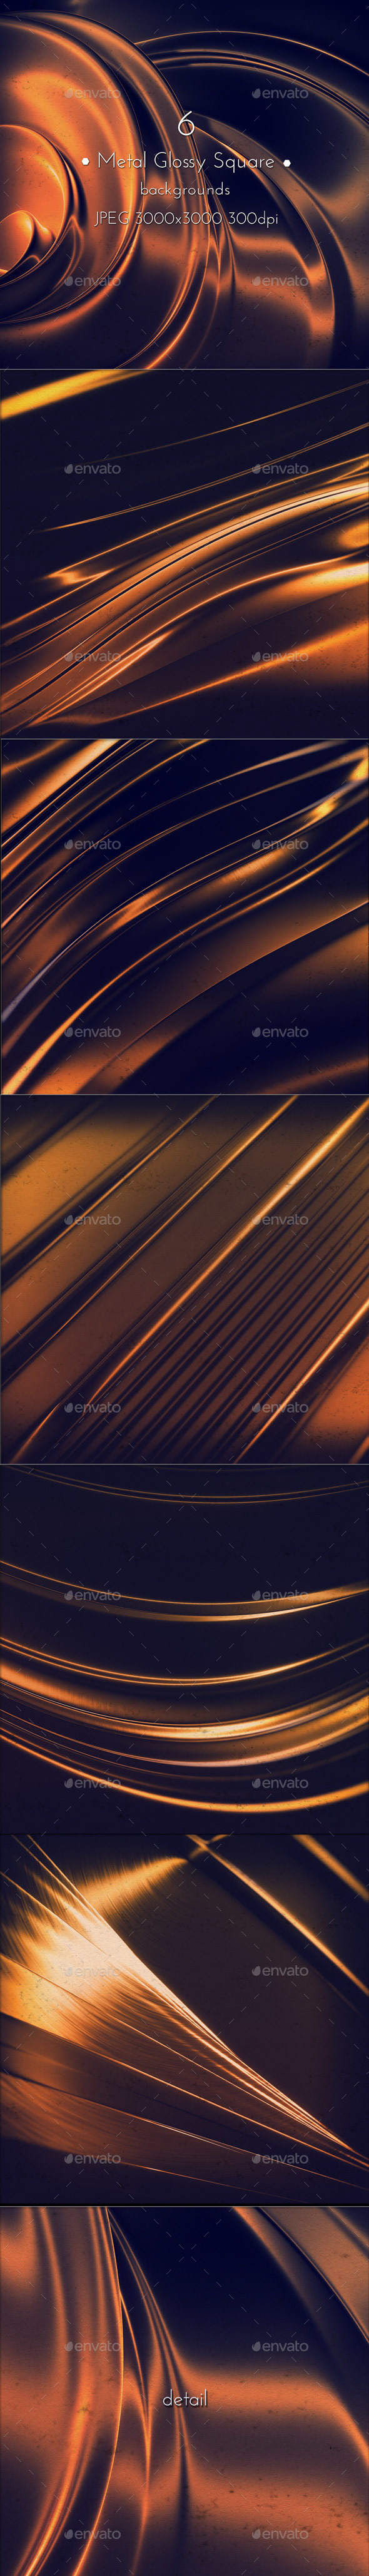 Metal Glossy Background - Abstract Backgrounds